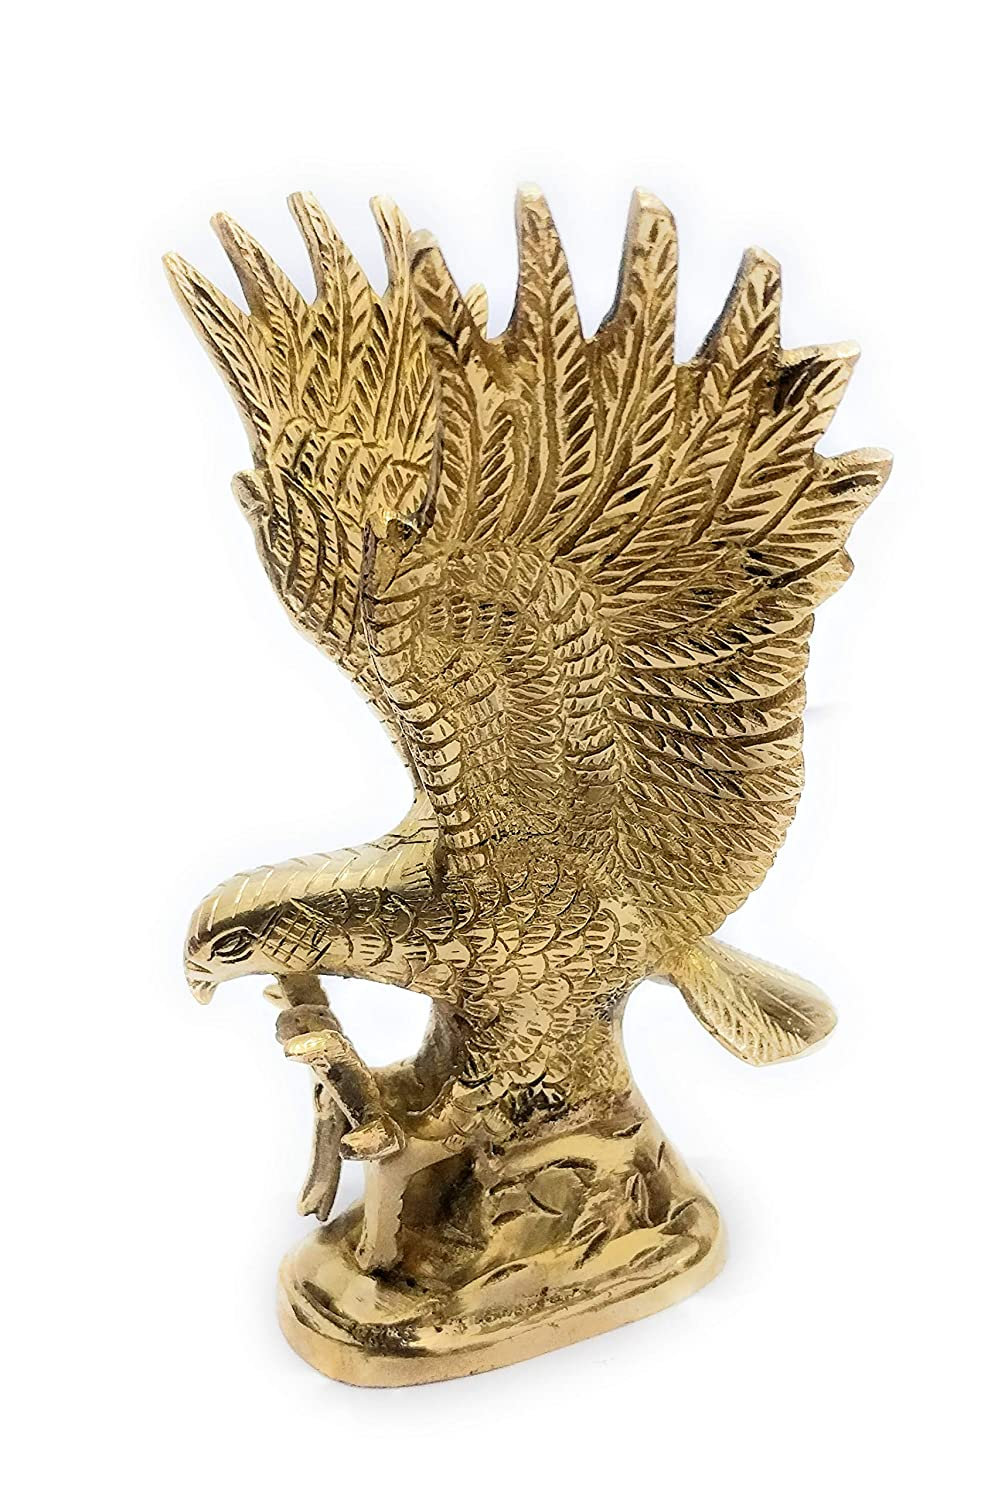 athizay Brass Eagle Statues and Figurines 16cm Gold Finish Bird Sculpture Showpiece for Home Decor Men Gifts Item